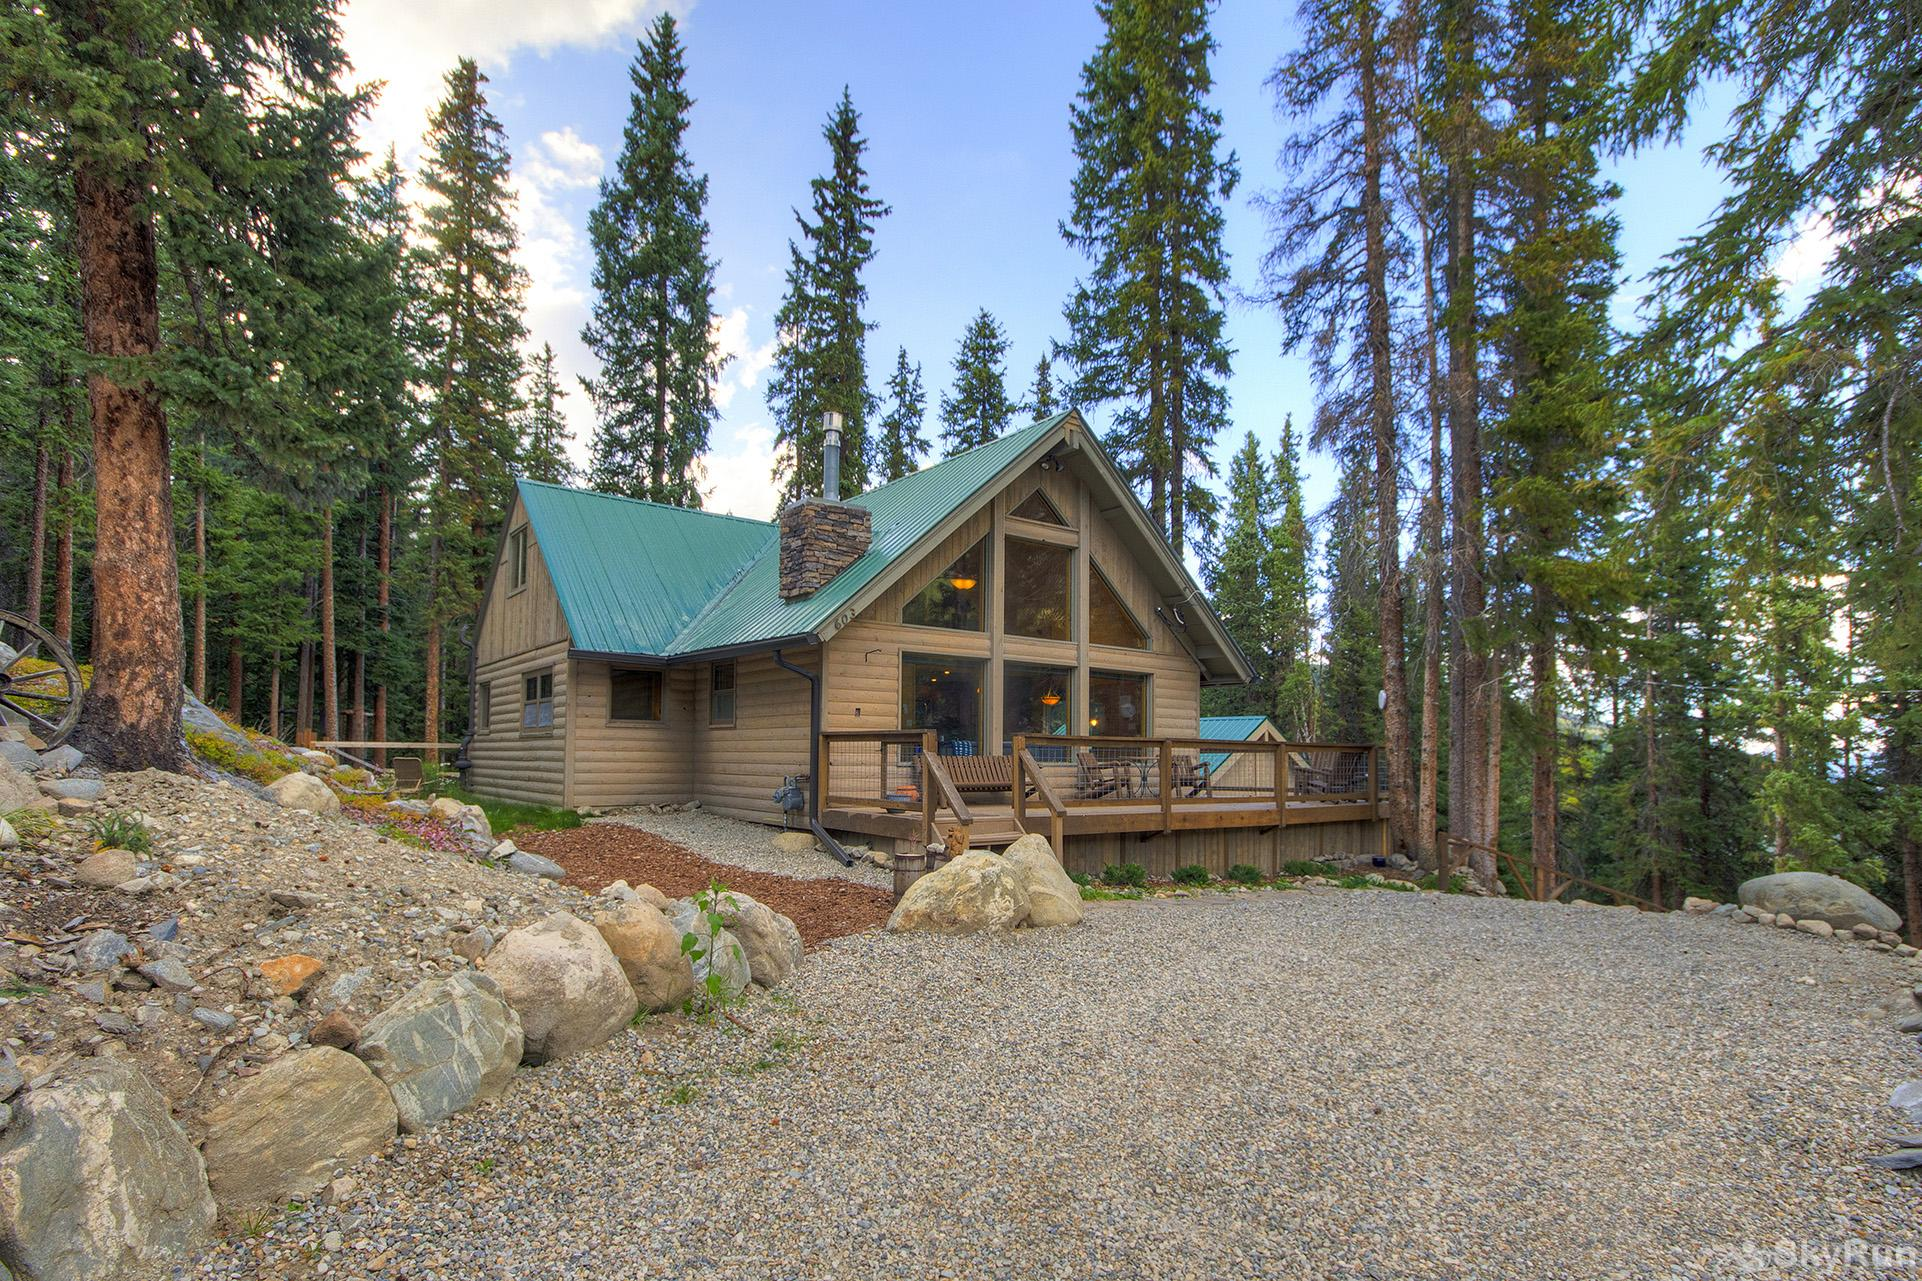 Black Bear Chalet Quiet forested setting